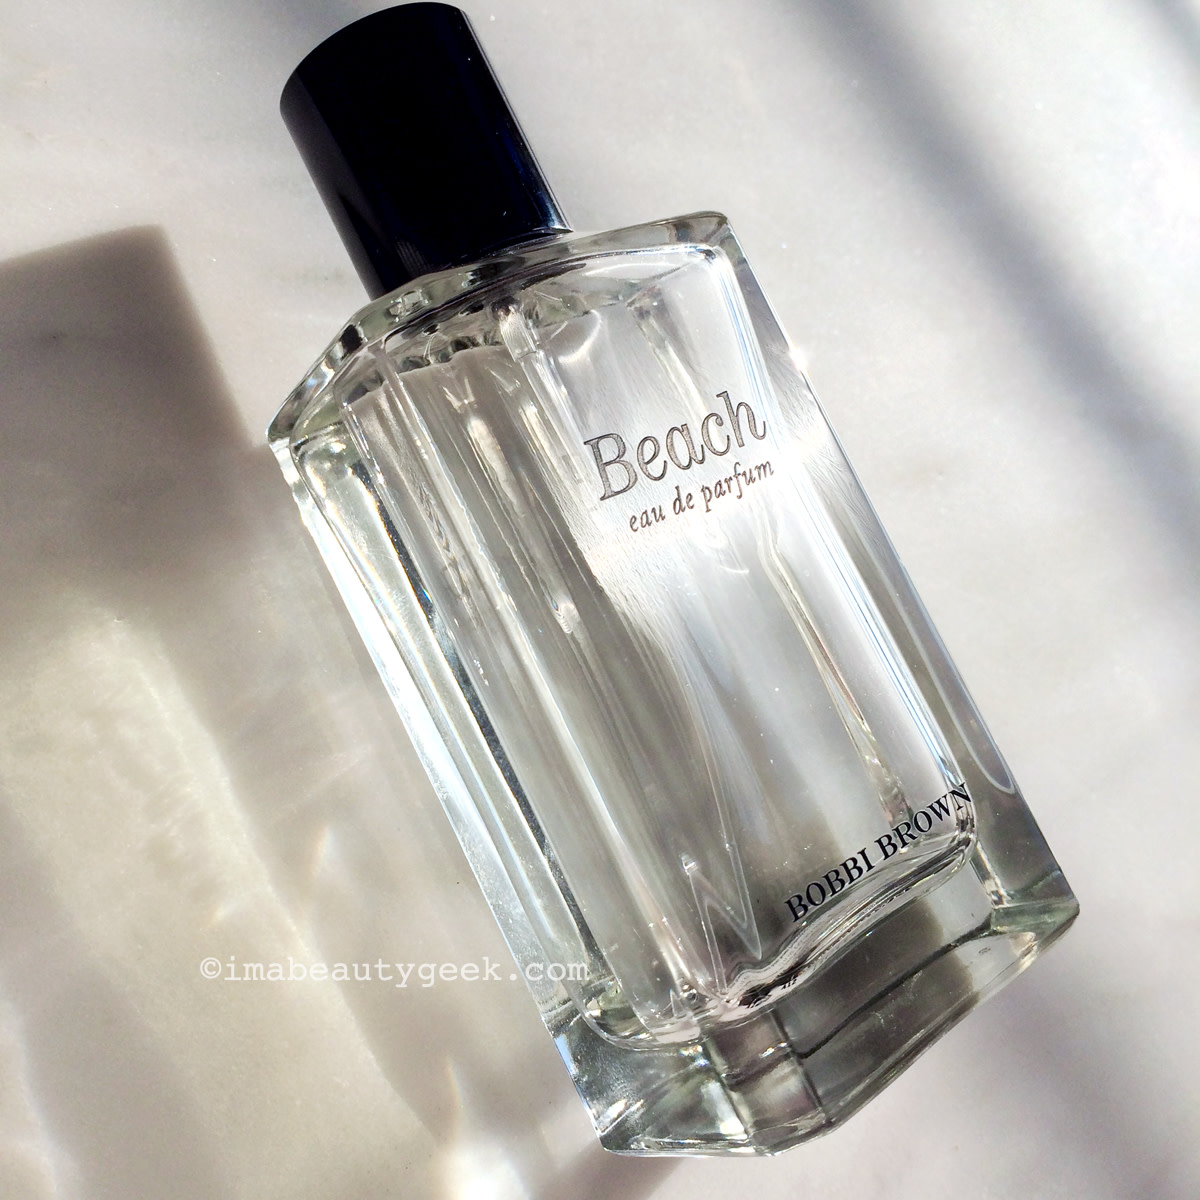 Spraycation fragrance: Bobbi Brown Beach Eau de Parfum